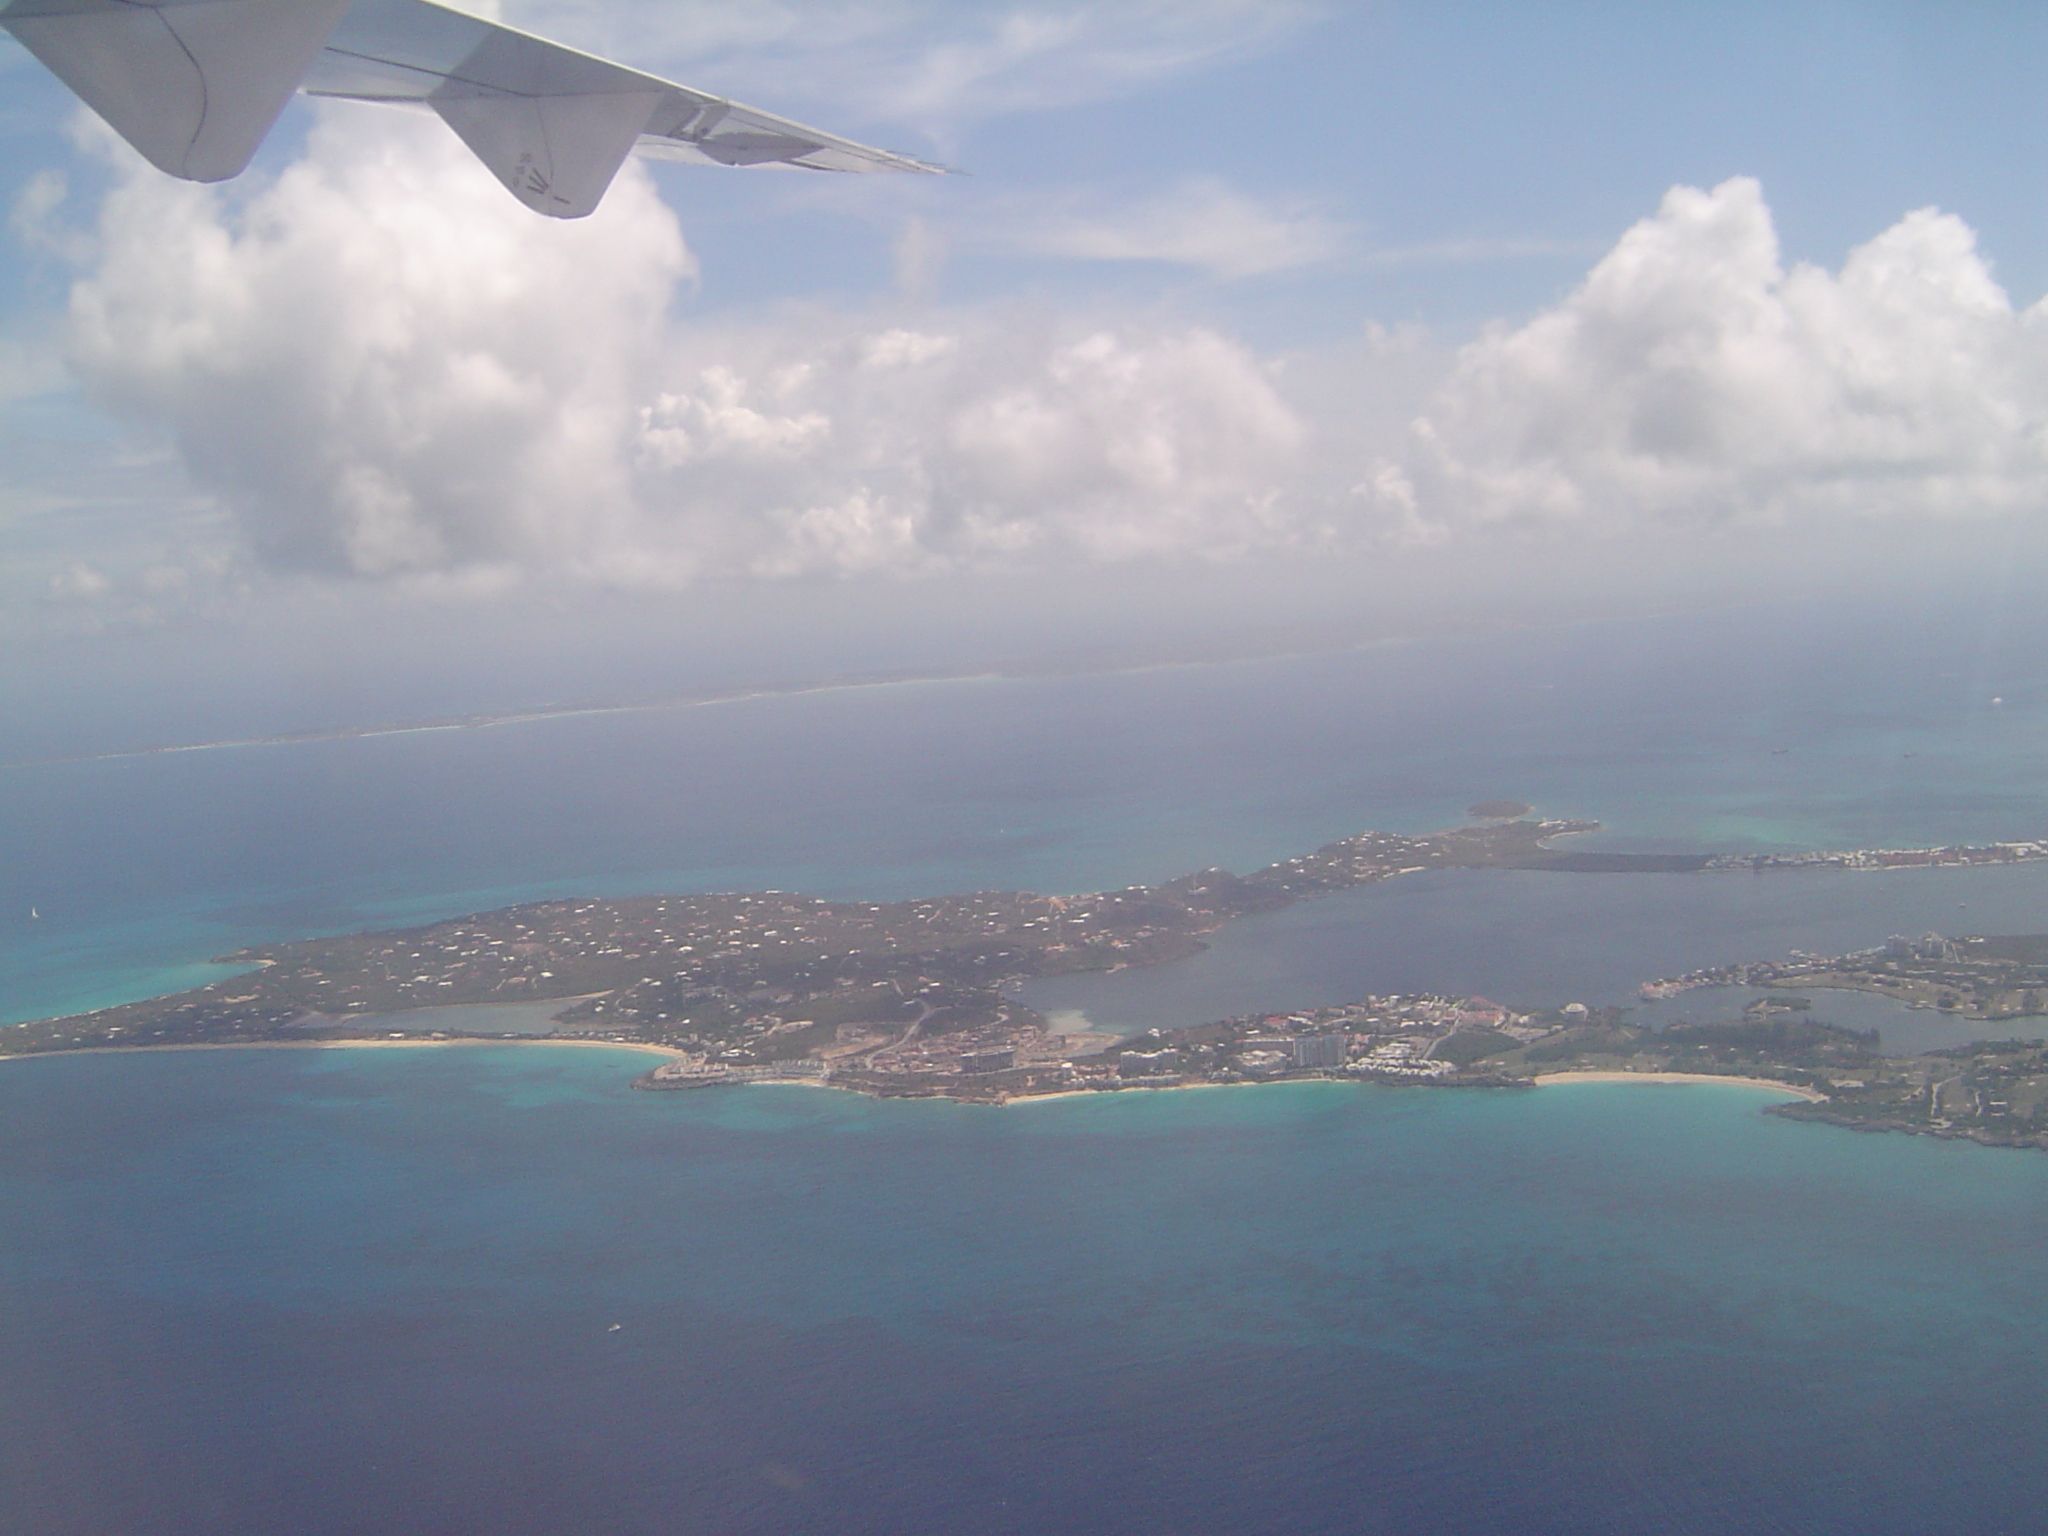 St. Martin from our plane